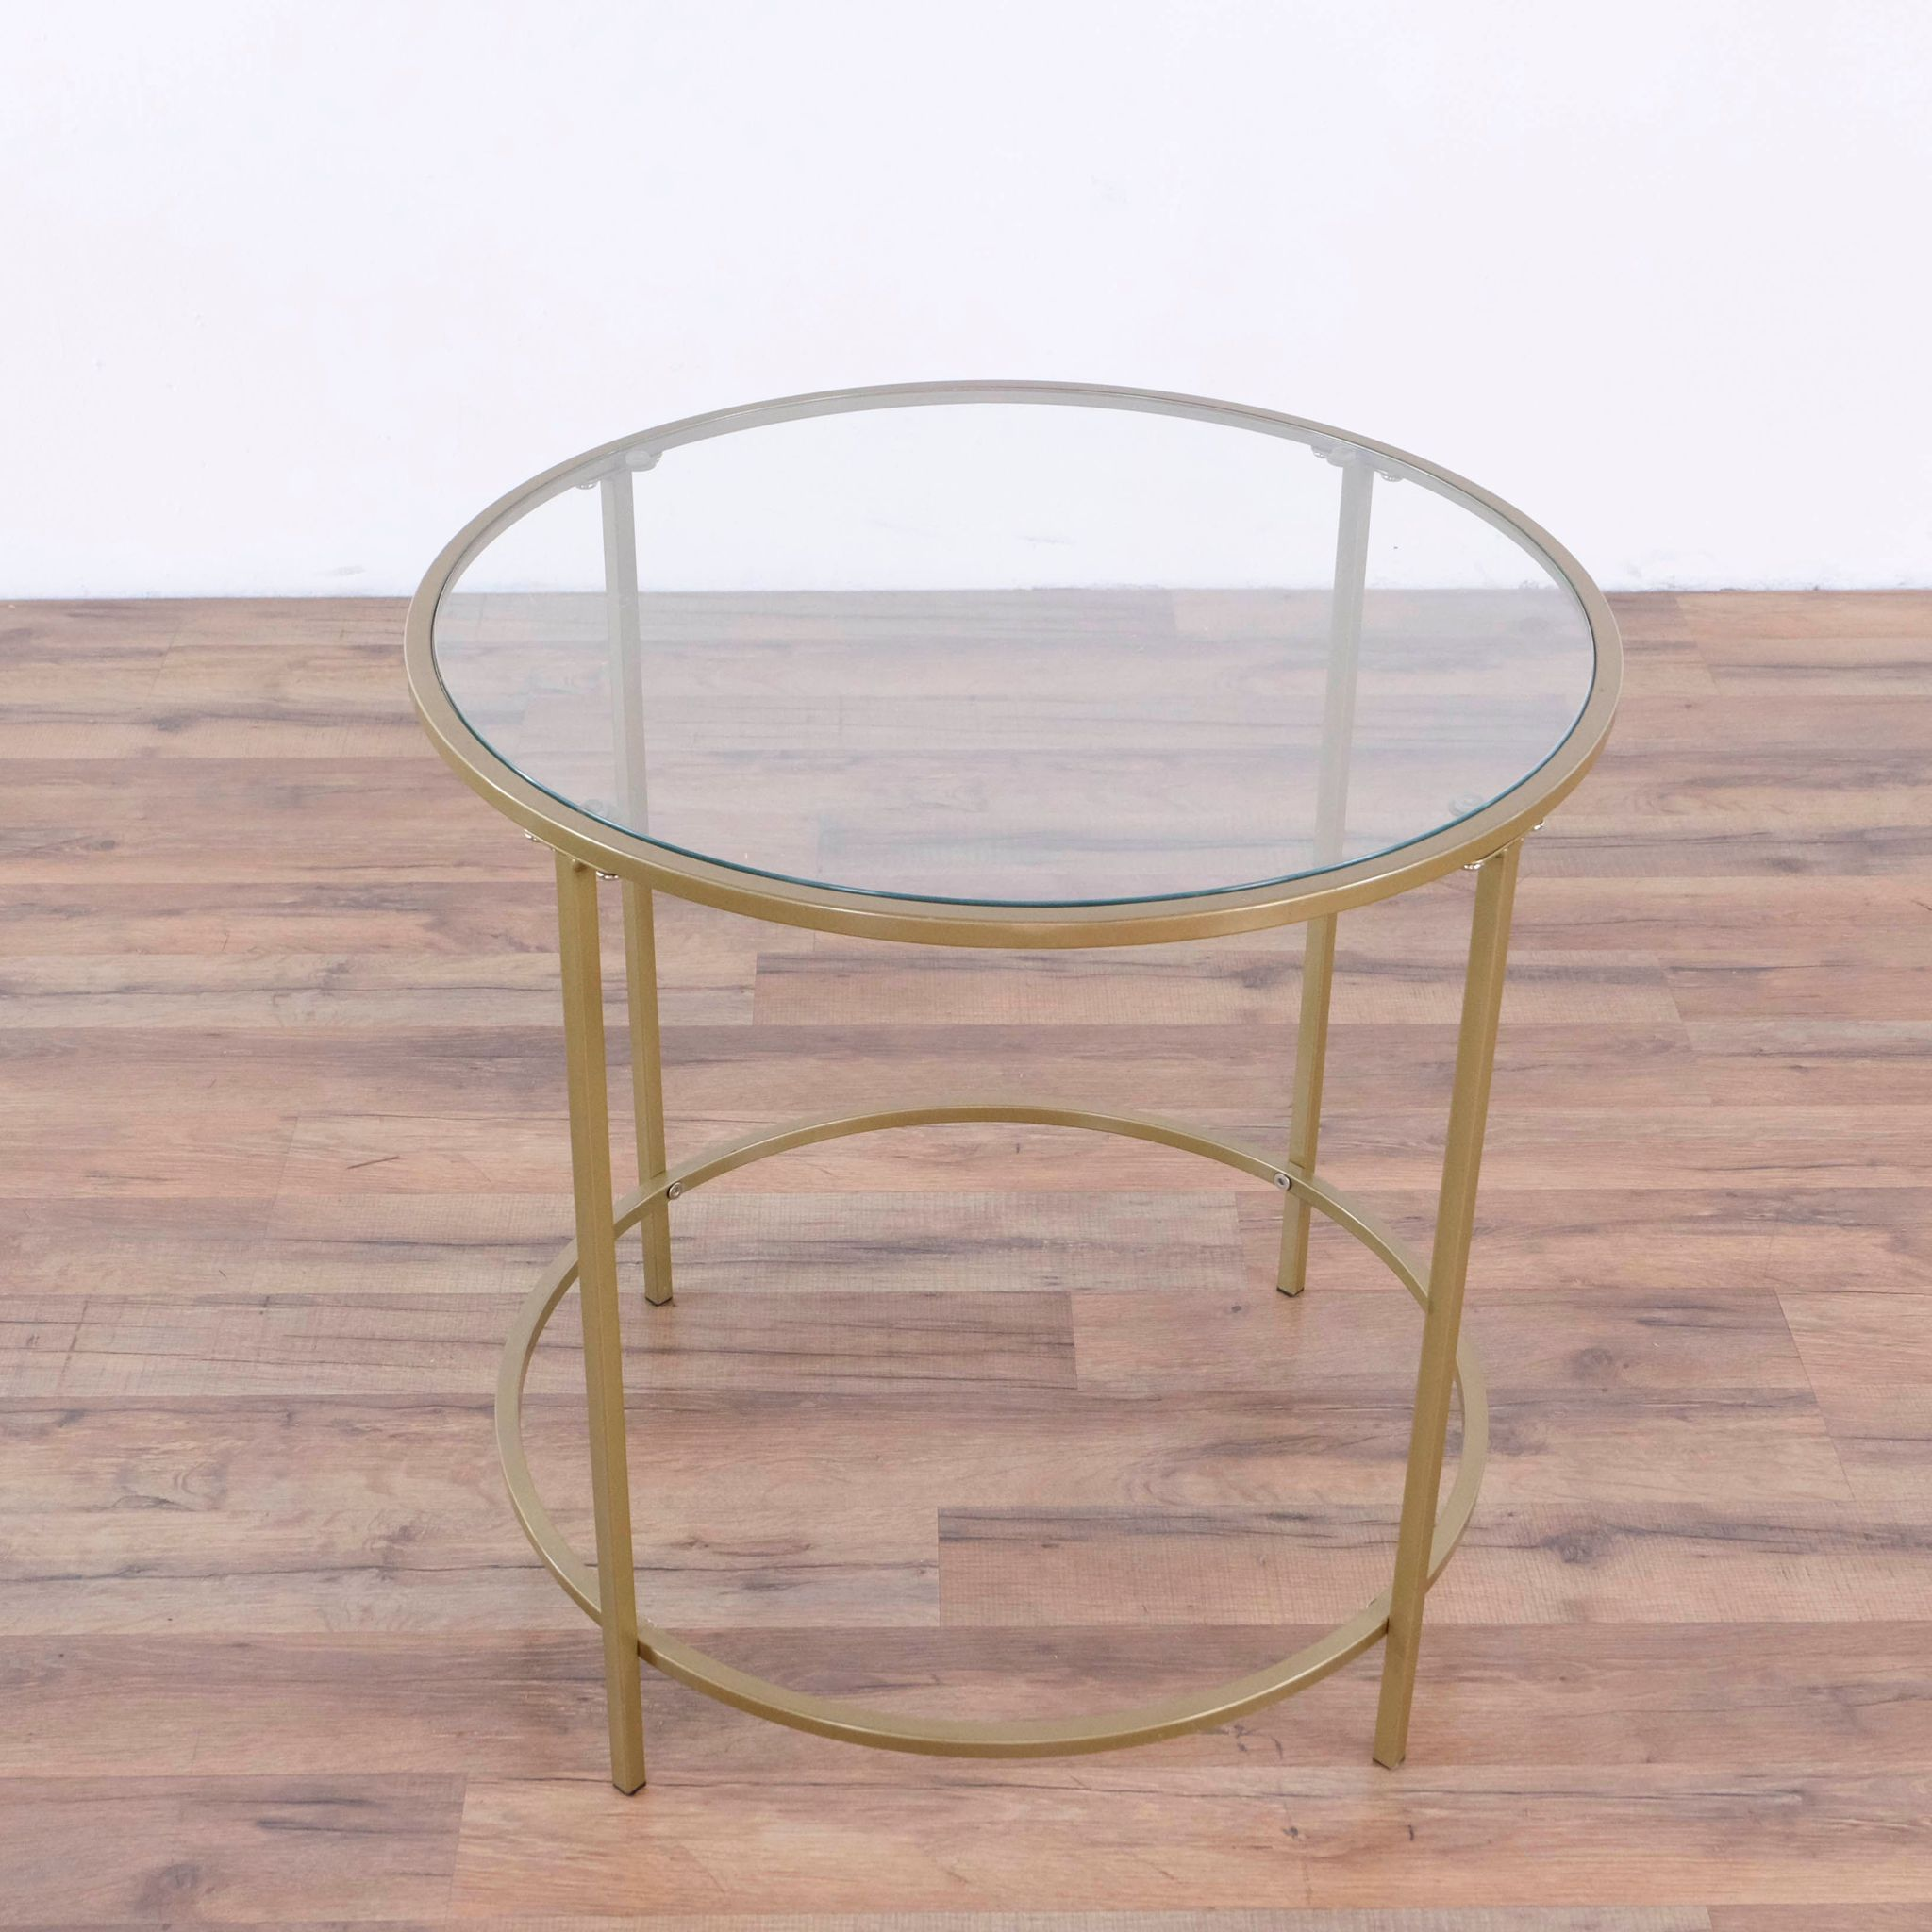 Glass Top Hemingway End Table In Satin Gold Div P Glass Top Metal Frame In Gold Tone P Table Style Width 100 Tbo Table Style End Tables Coffee Table [ 2048 x 2048 Pixel ]